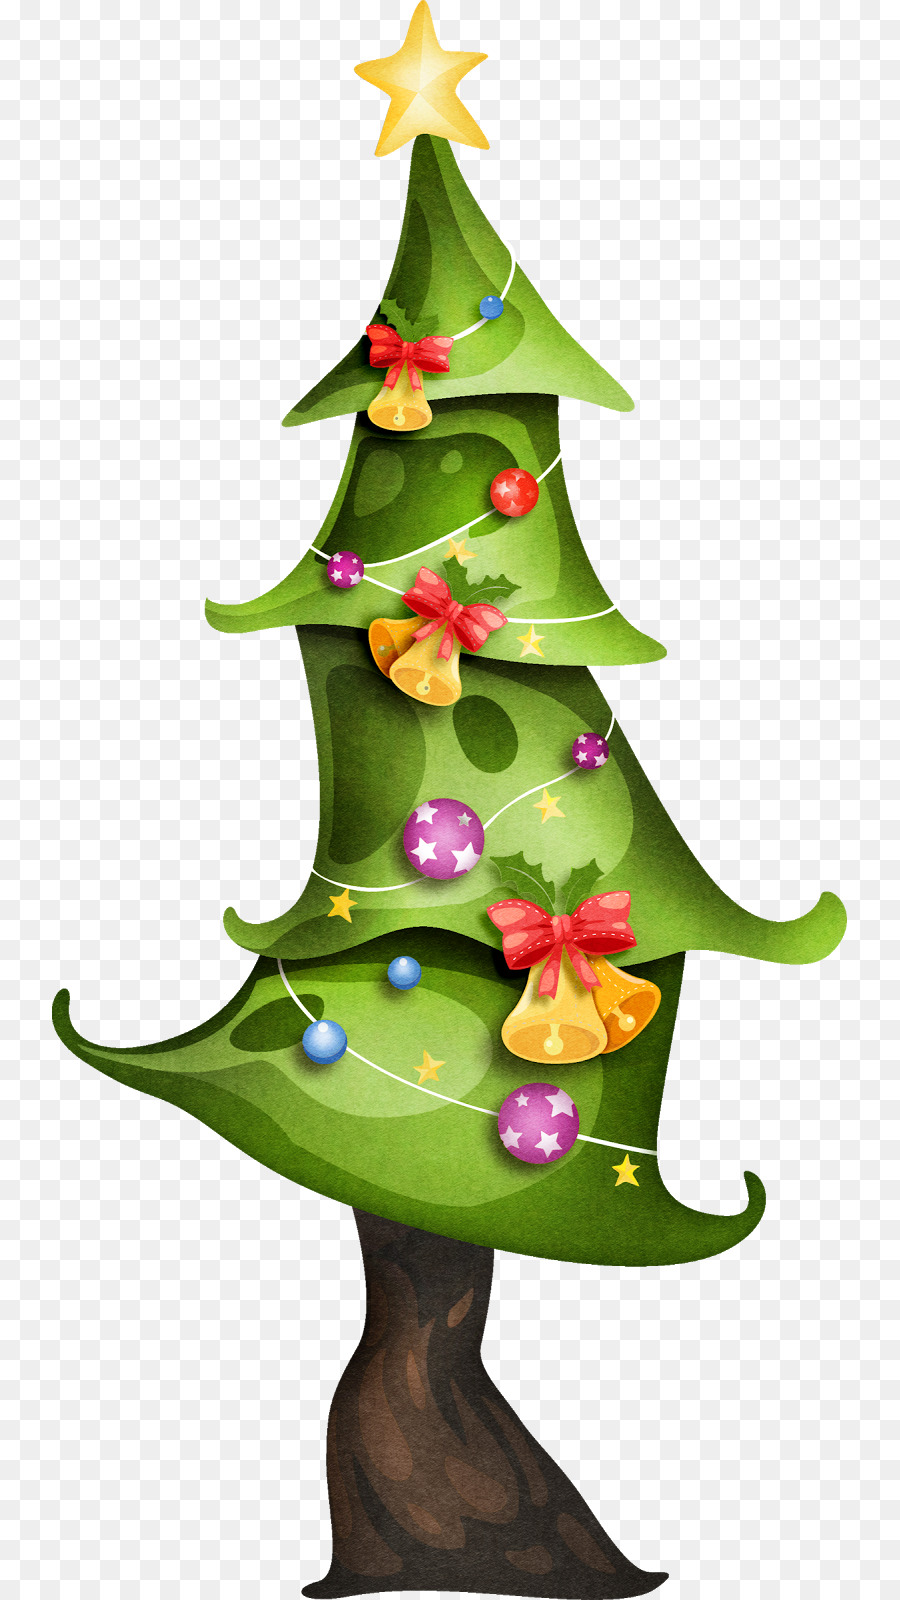 The Grinch Christmas Tree Clipart Illustration Tree Christmas Transparent Clip Art